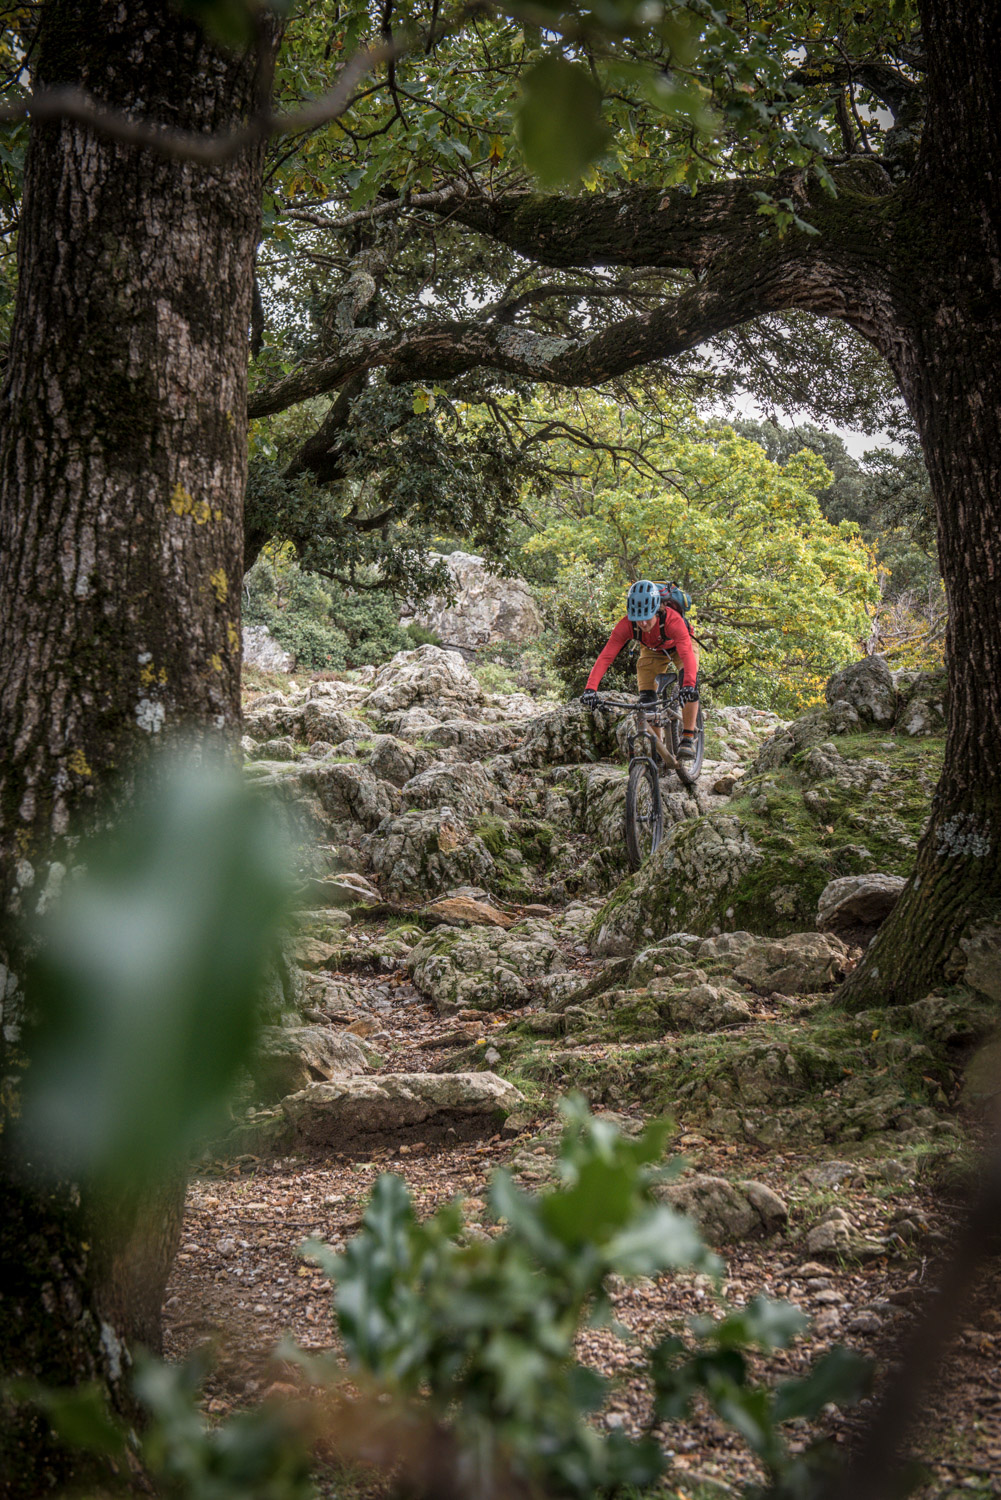 Choose your line wisely | Bikefex